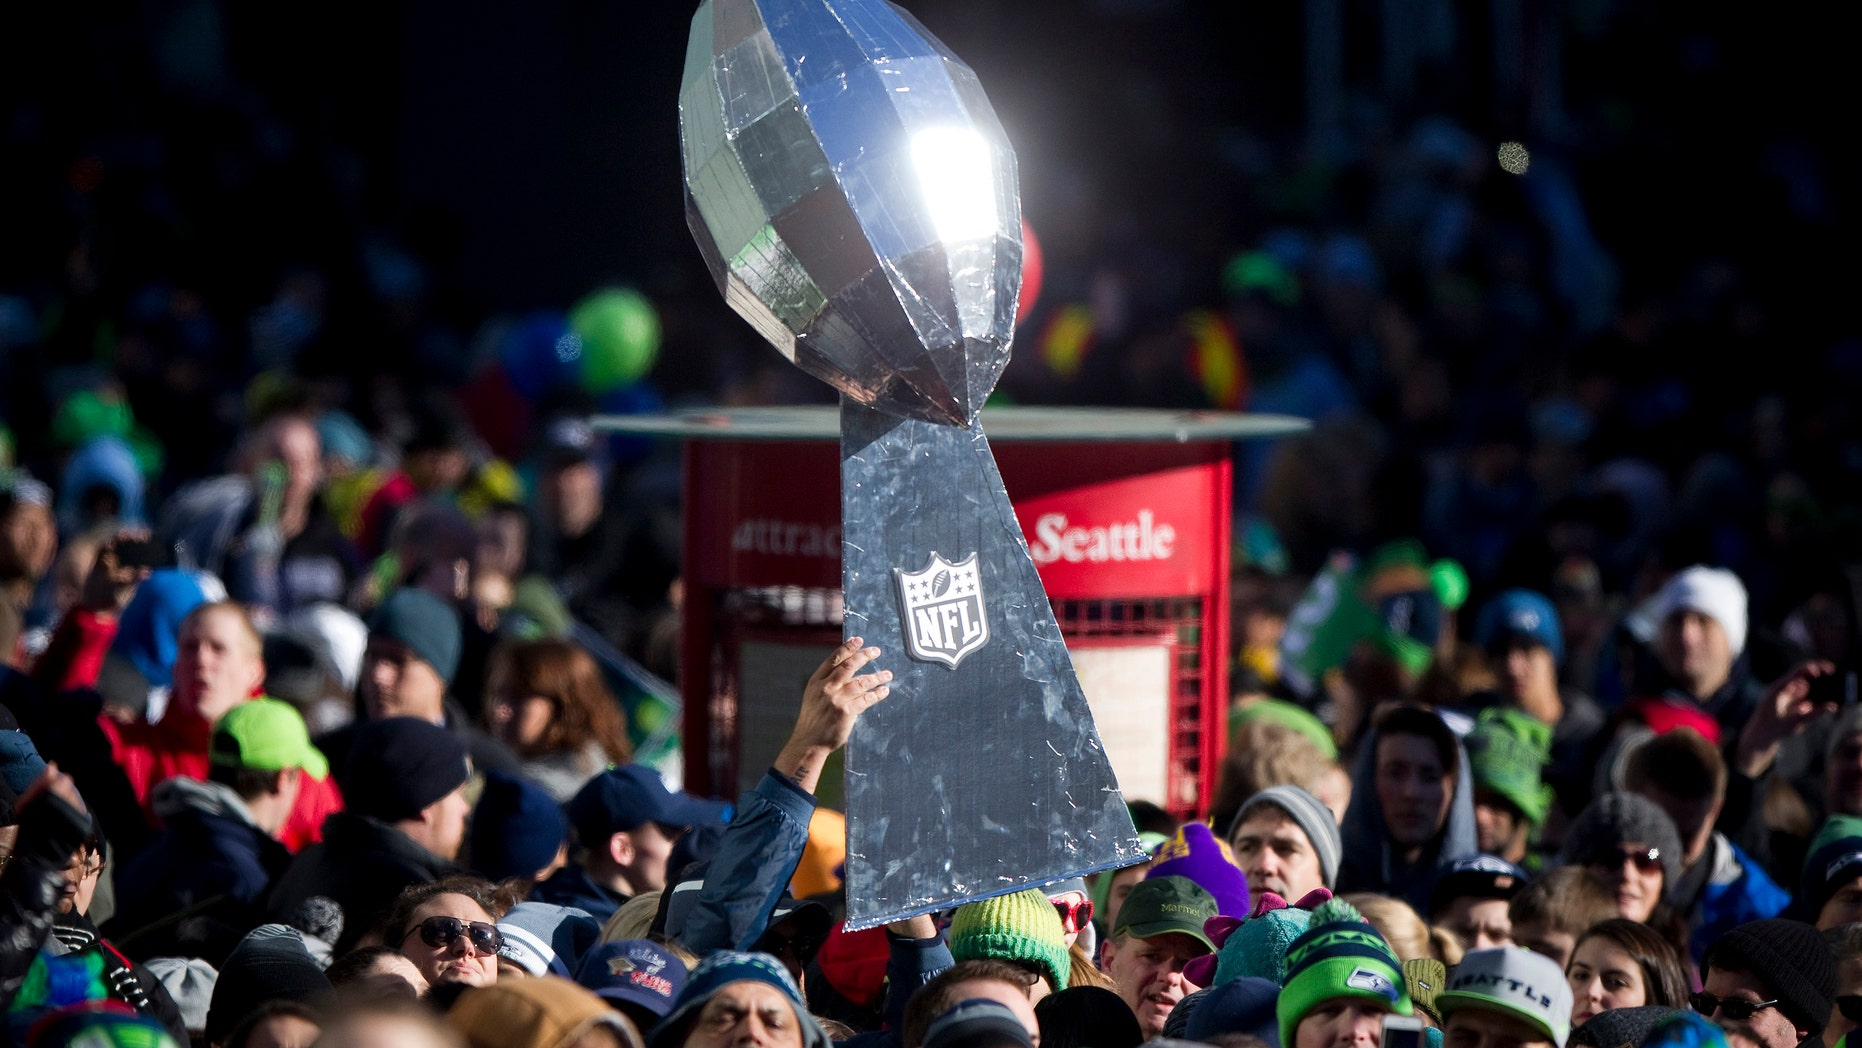 A Seattle Seahawks fan holds a giant Lombardi Trophy Super Bowl during the NFL team's Super Bowl victory parade in Seattle, Washington Feb. 5, 2014.